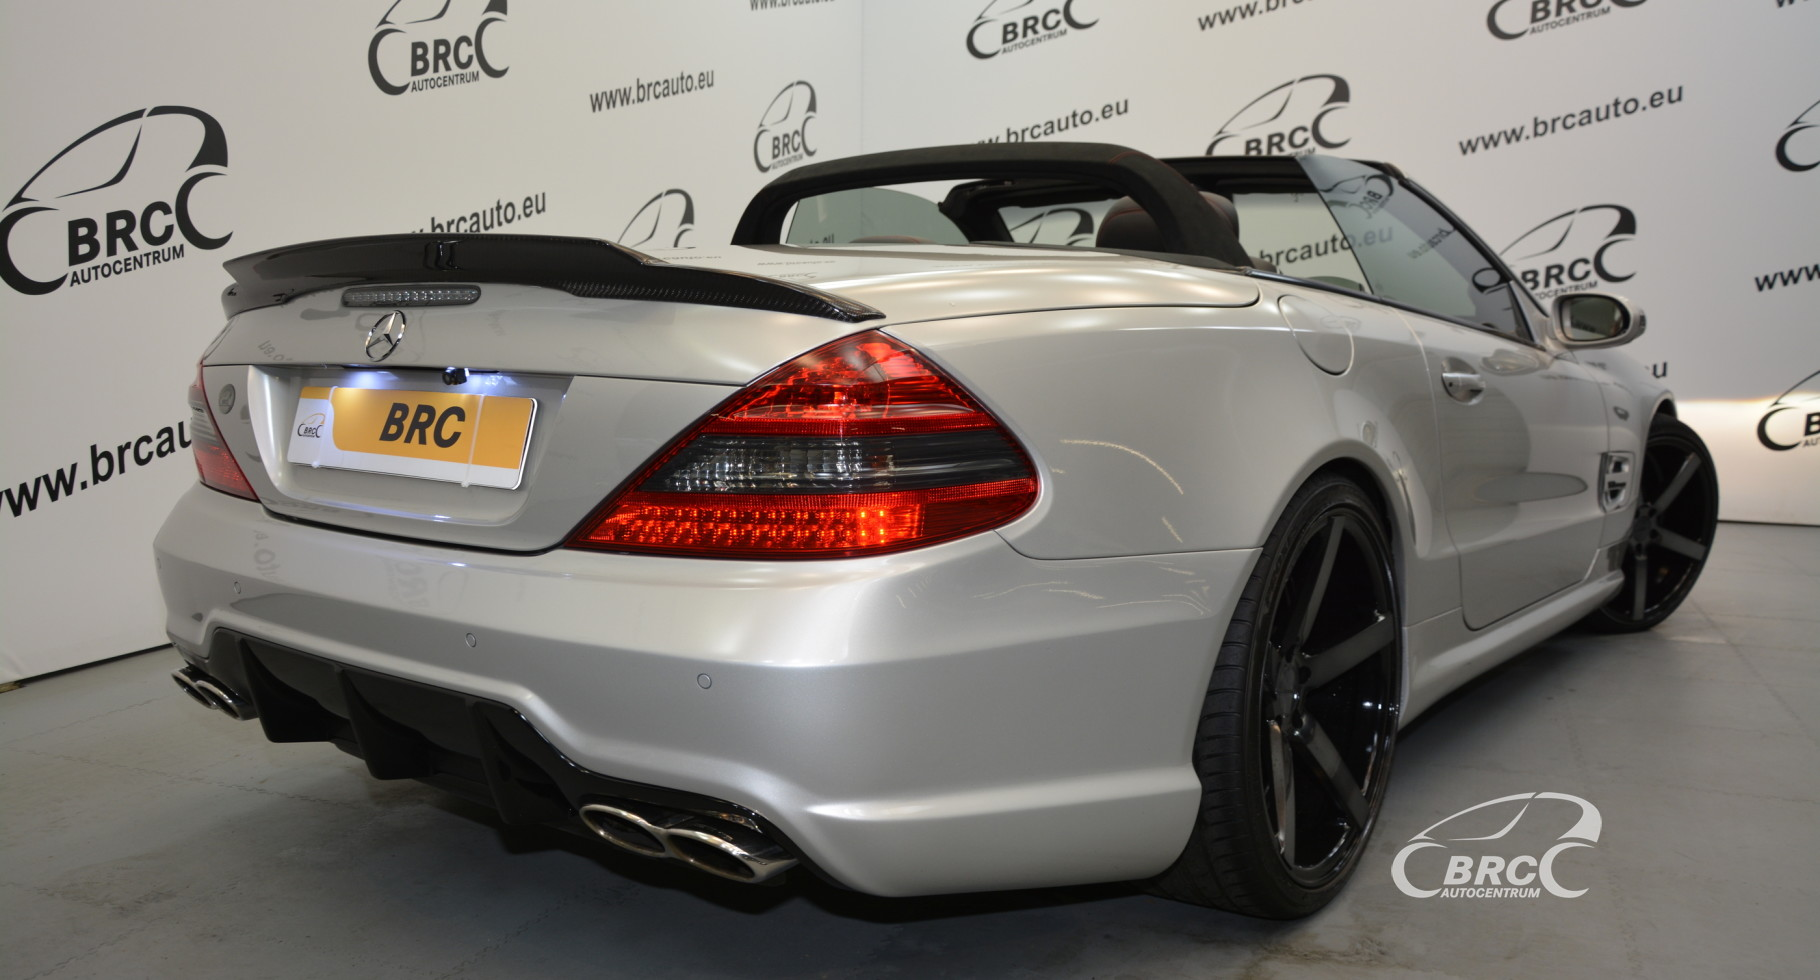 Mercedes-Benz SL 350 AMG Body Kit Automatas